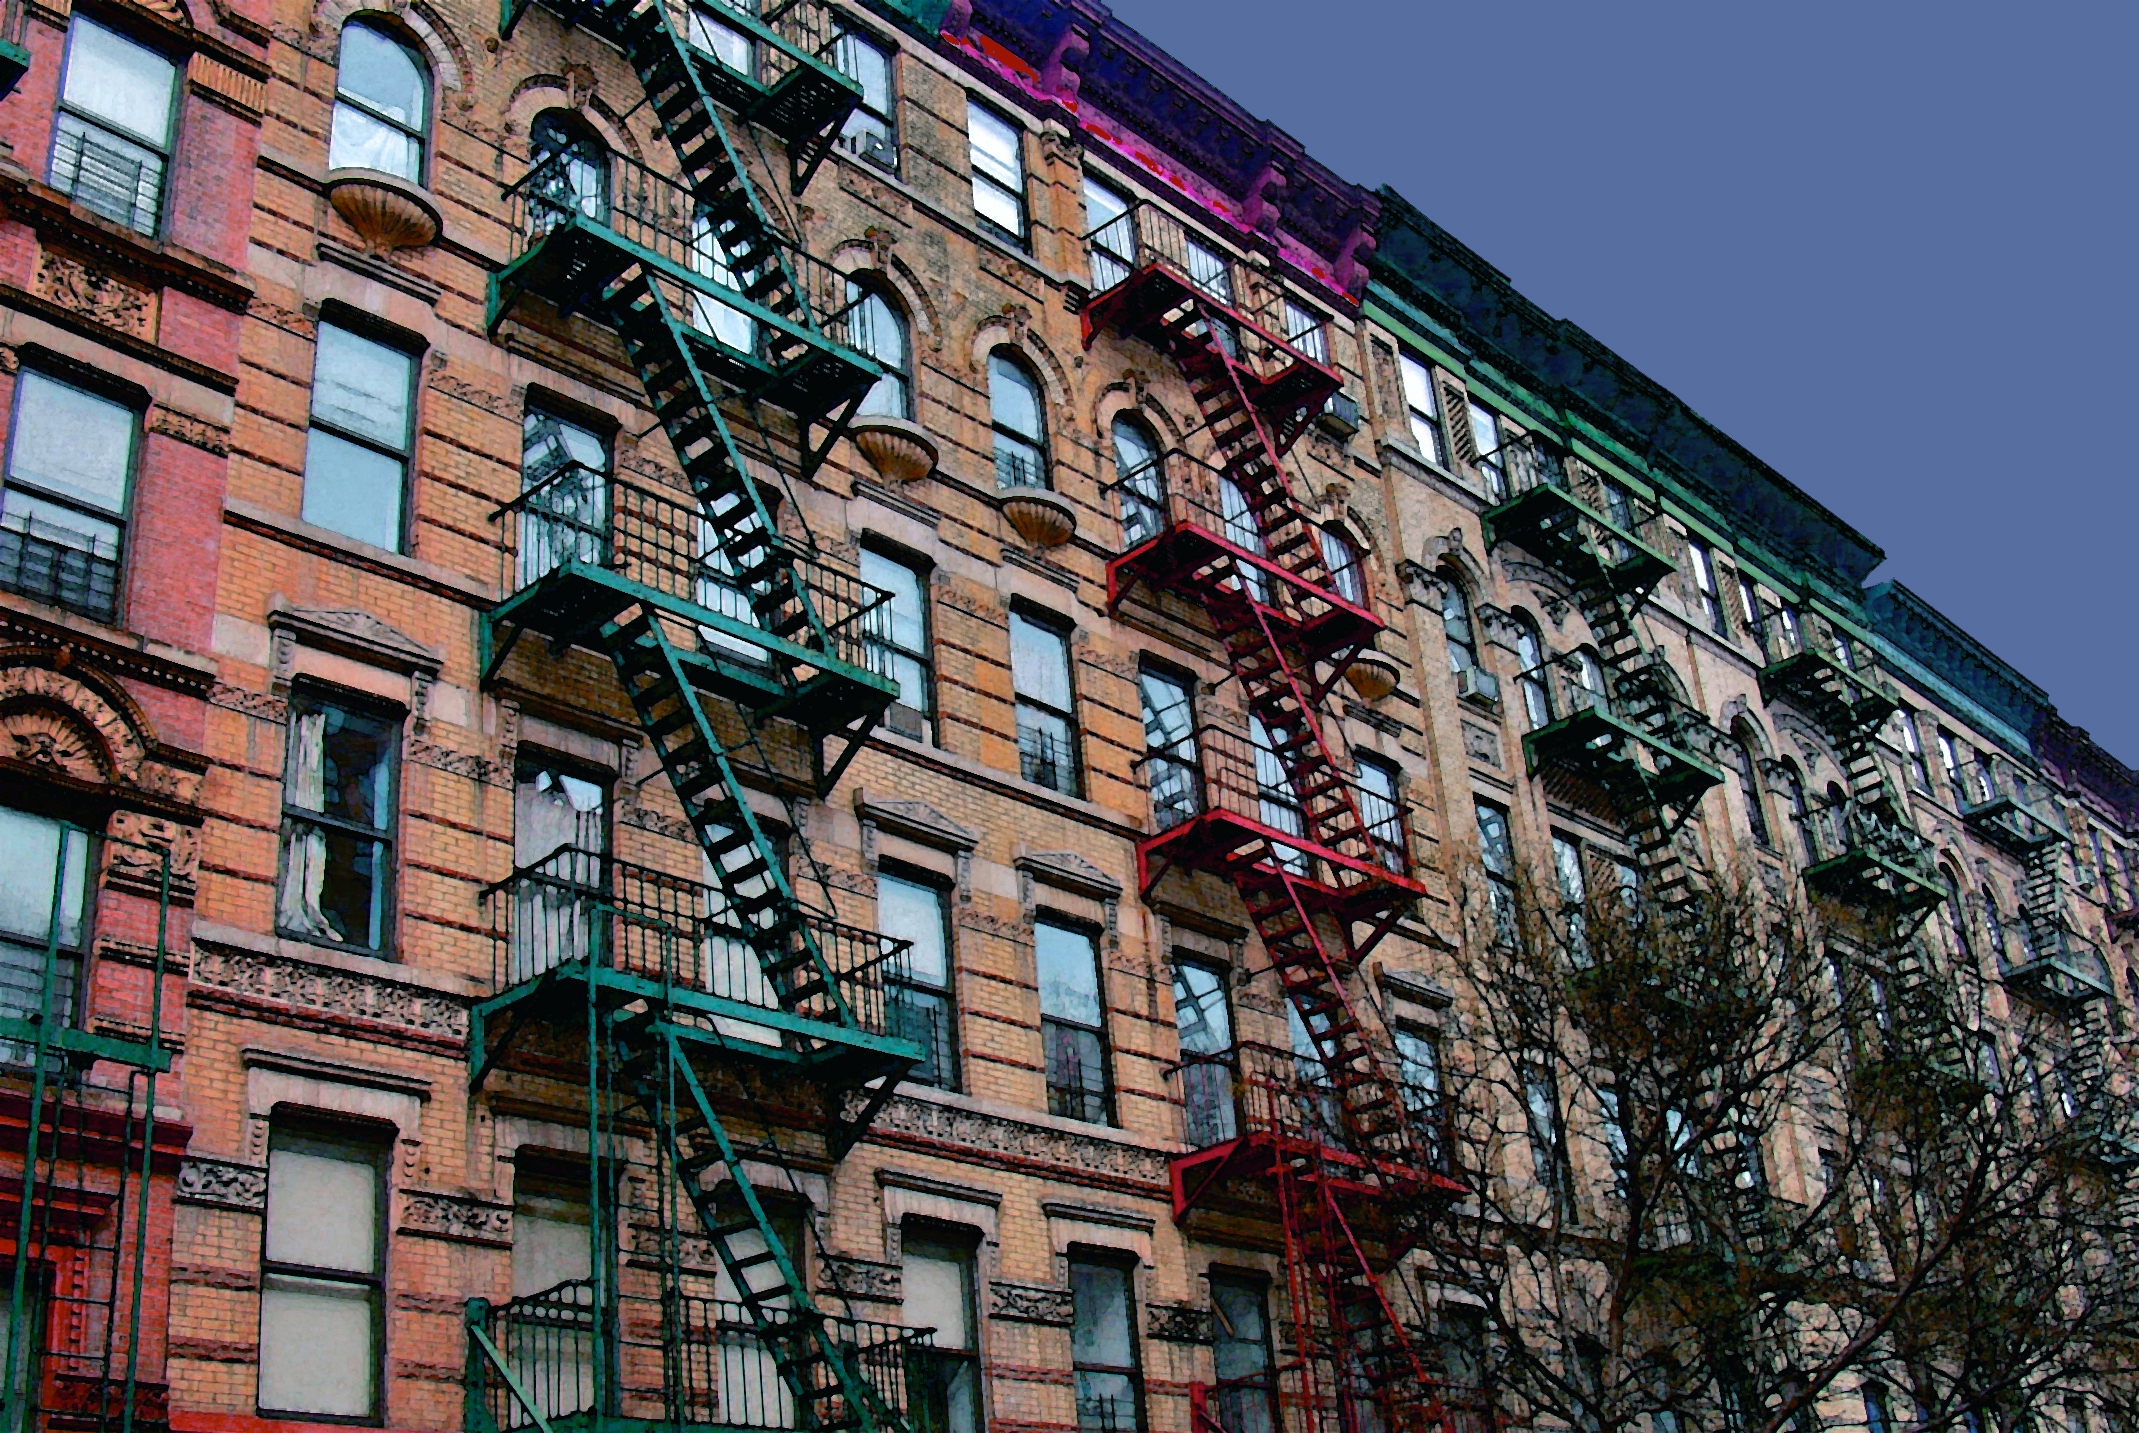 Rainbow Fire Escapes (New York), digitally enhanced photograph, 2009.jpg